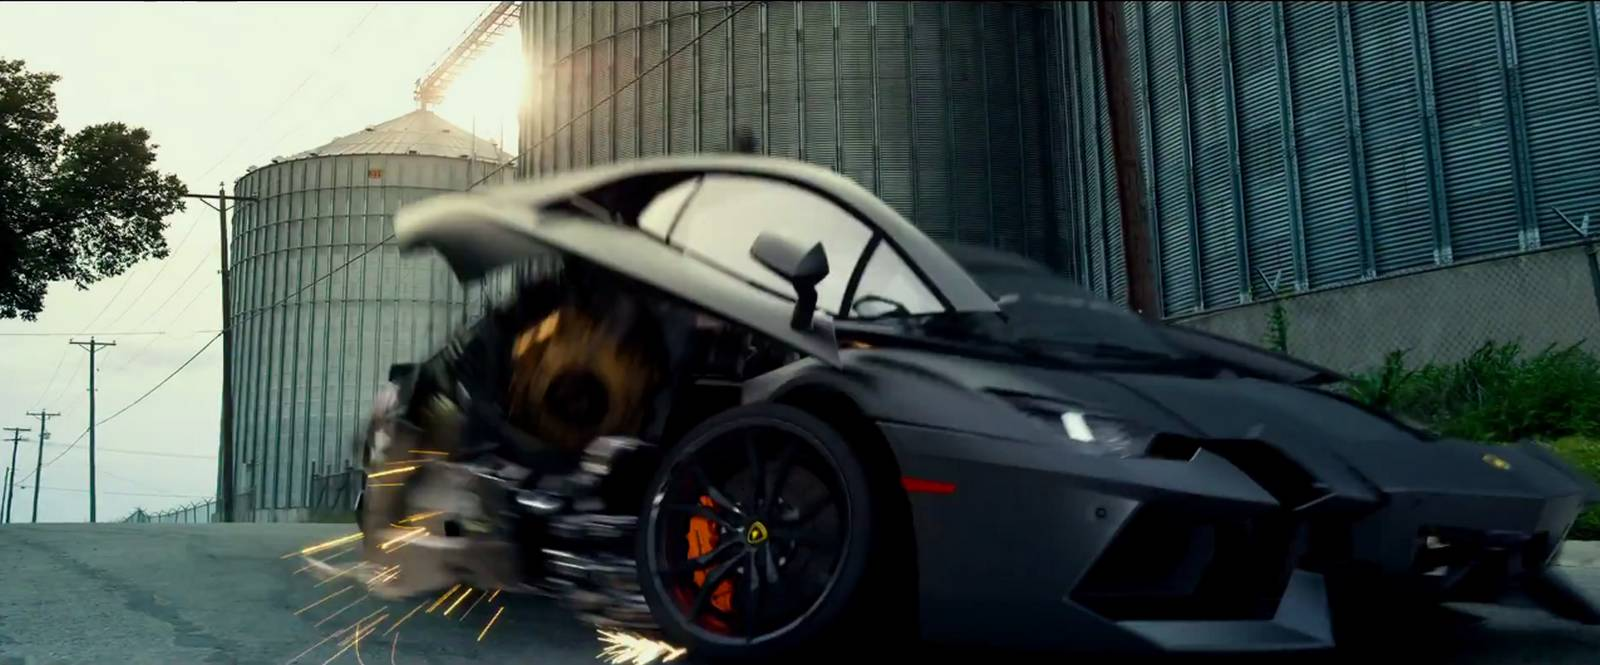 video: transformers 4 age of extinction trailer released